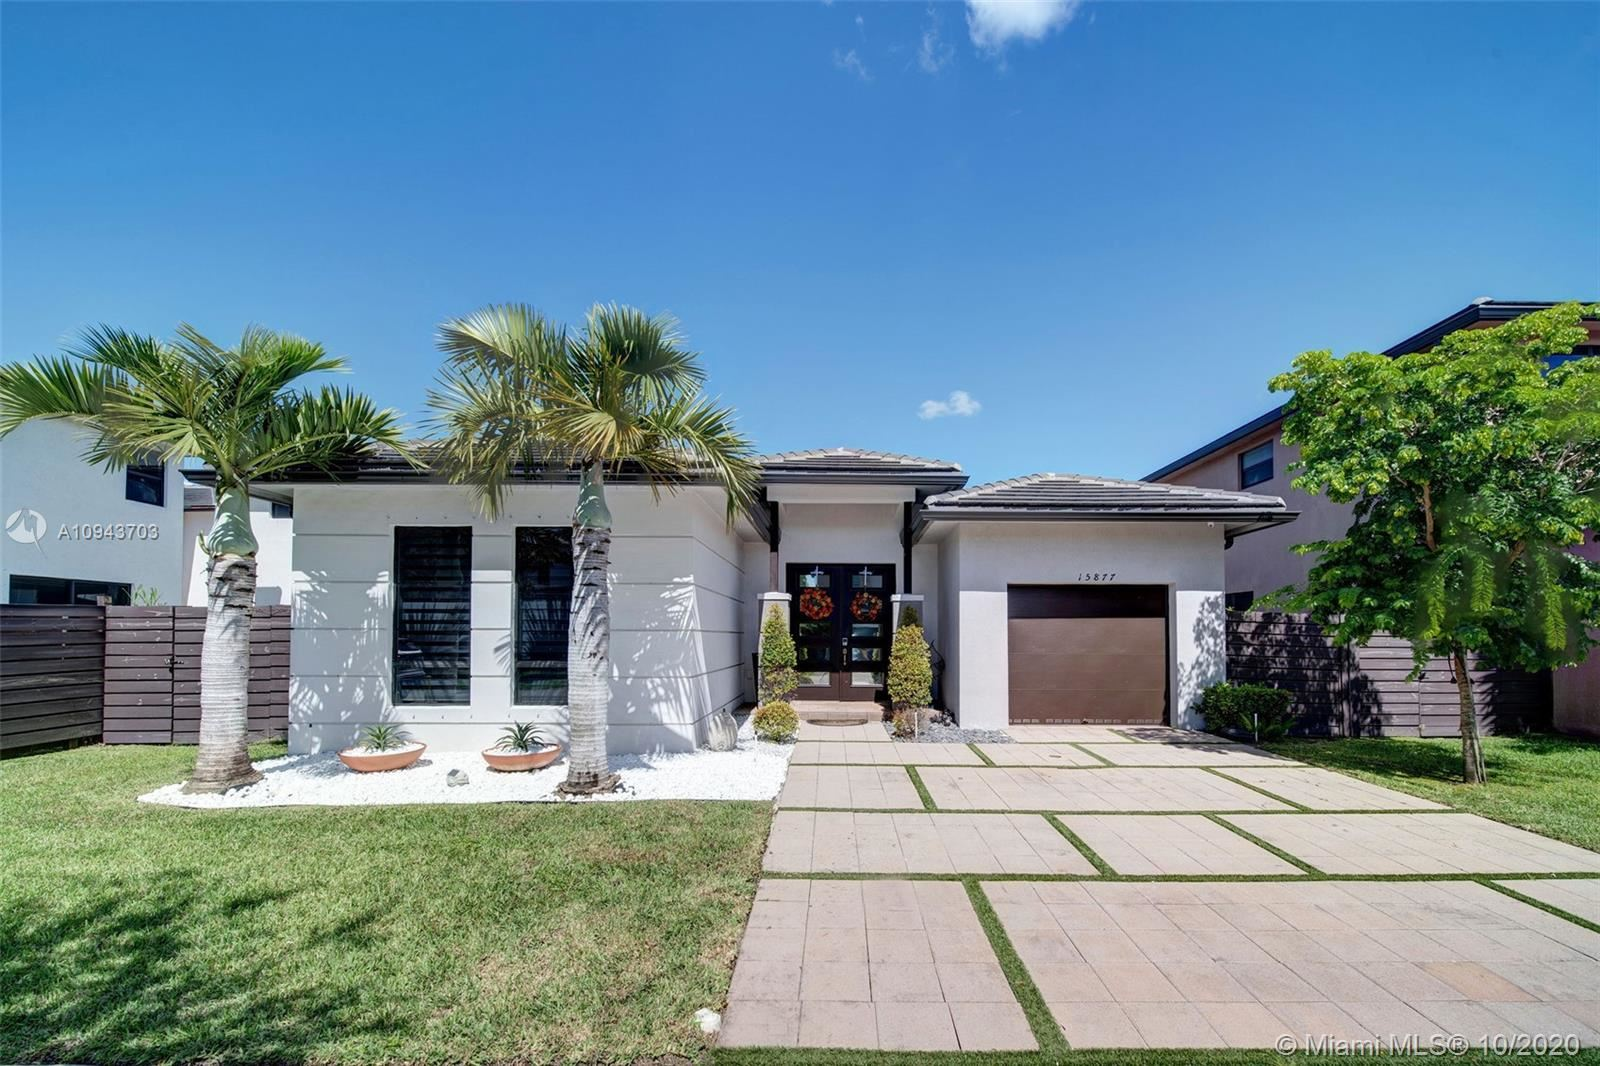 15877 SW 136th Way, Miami, FL 33196 - #: A10943703